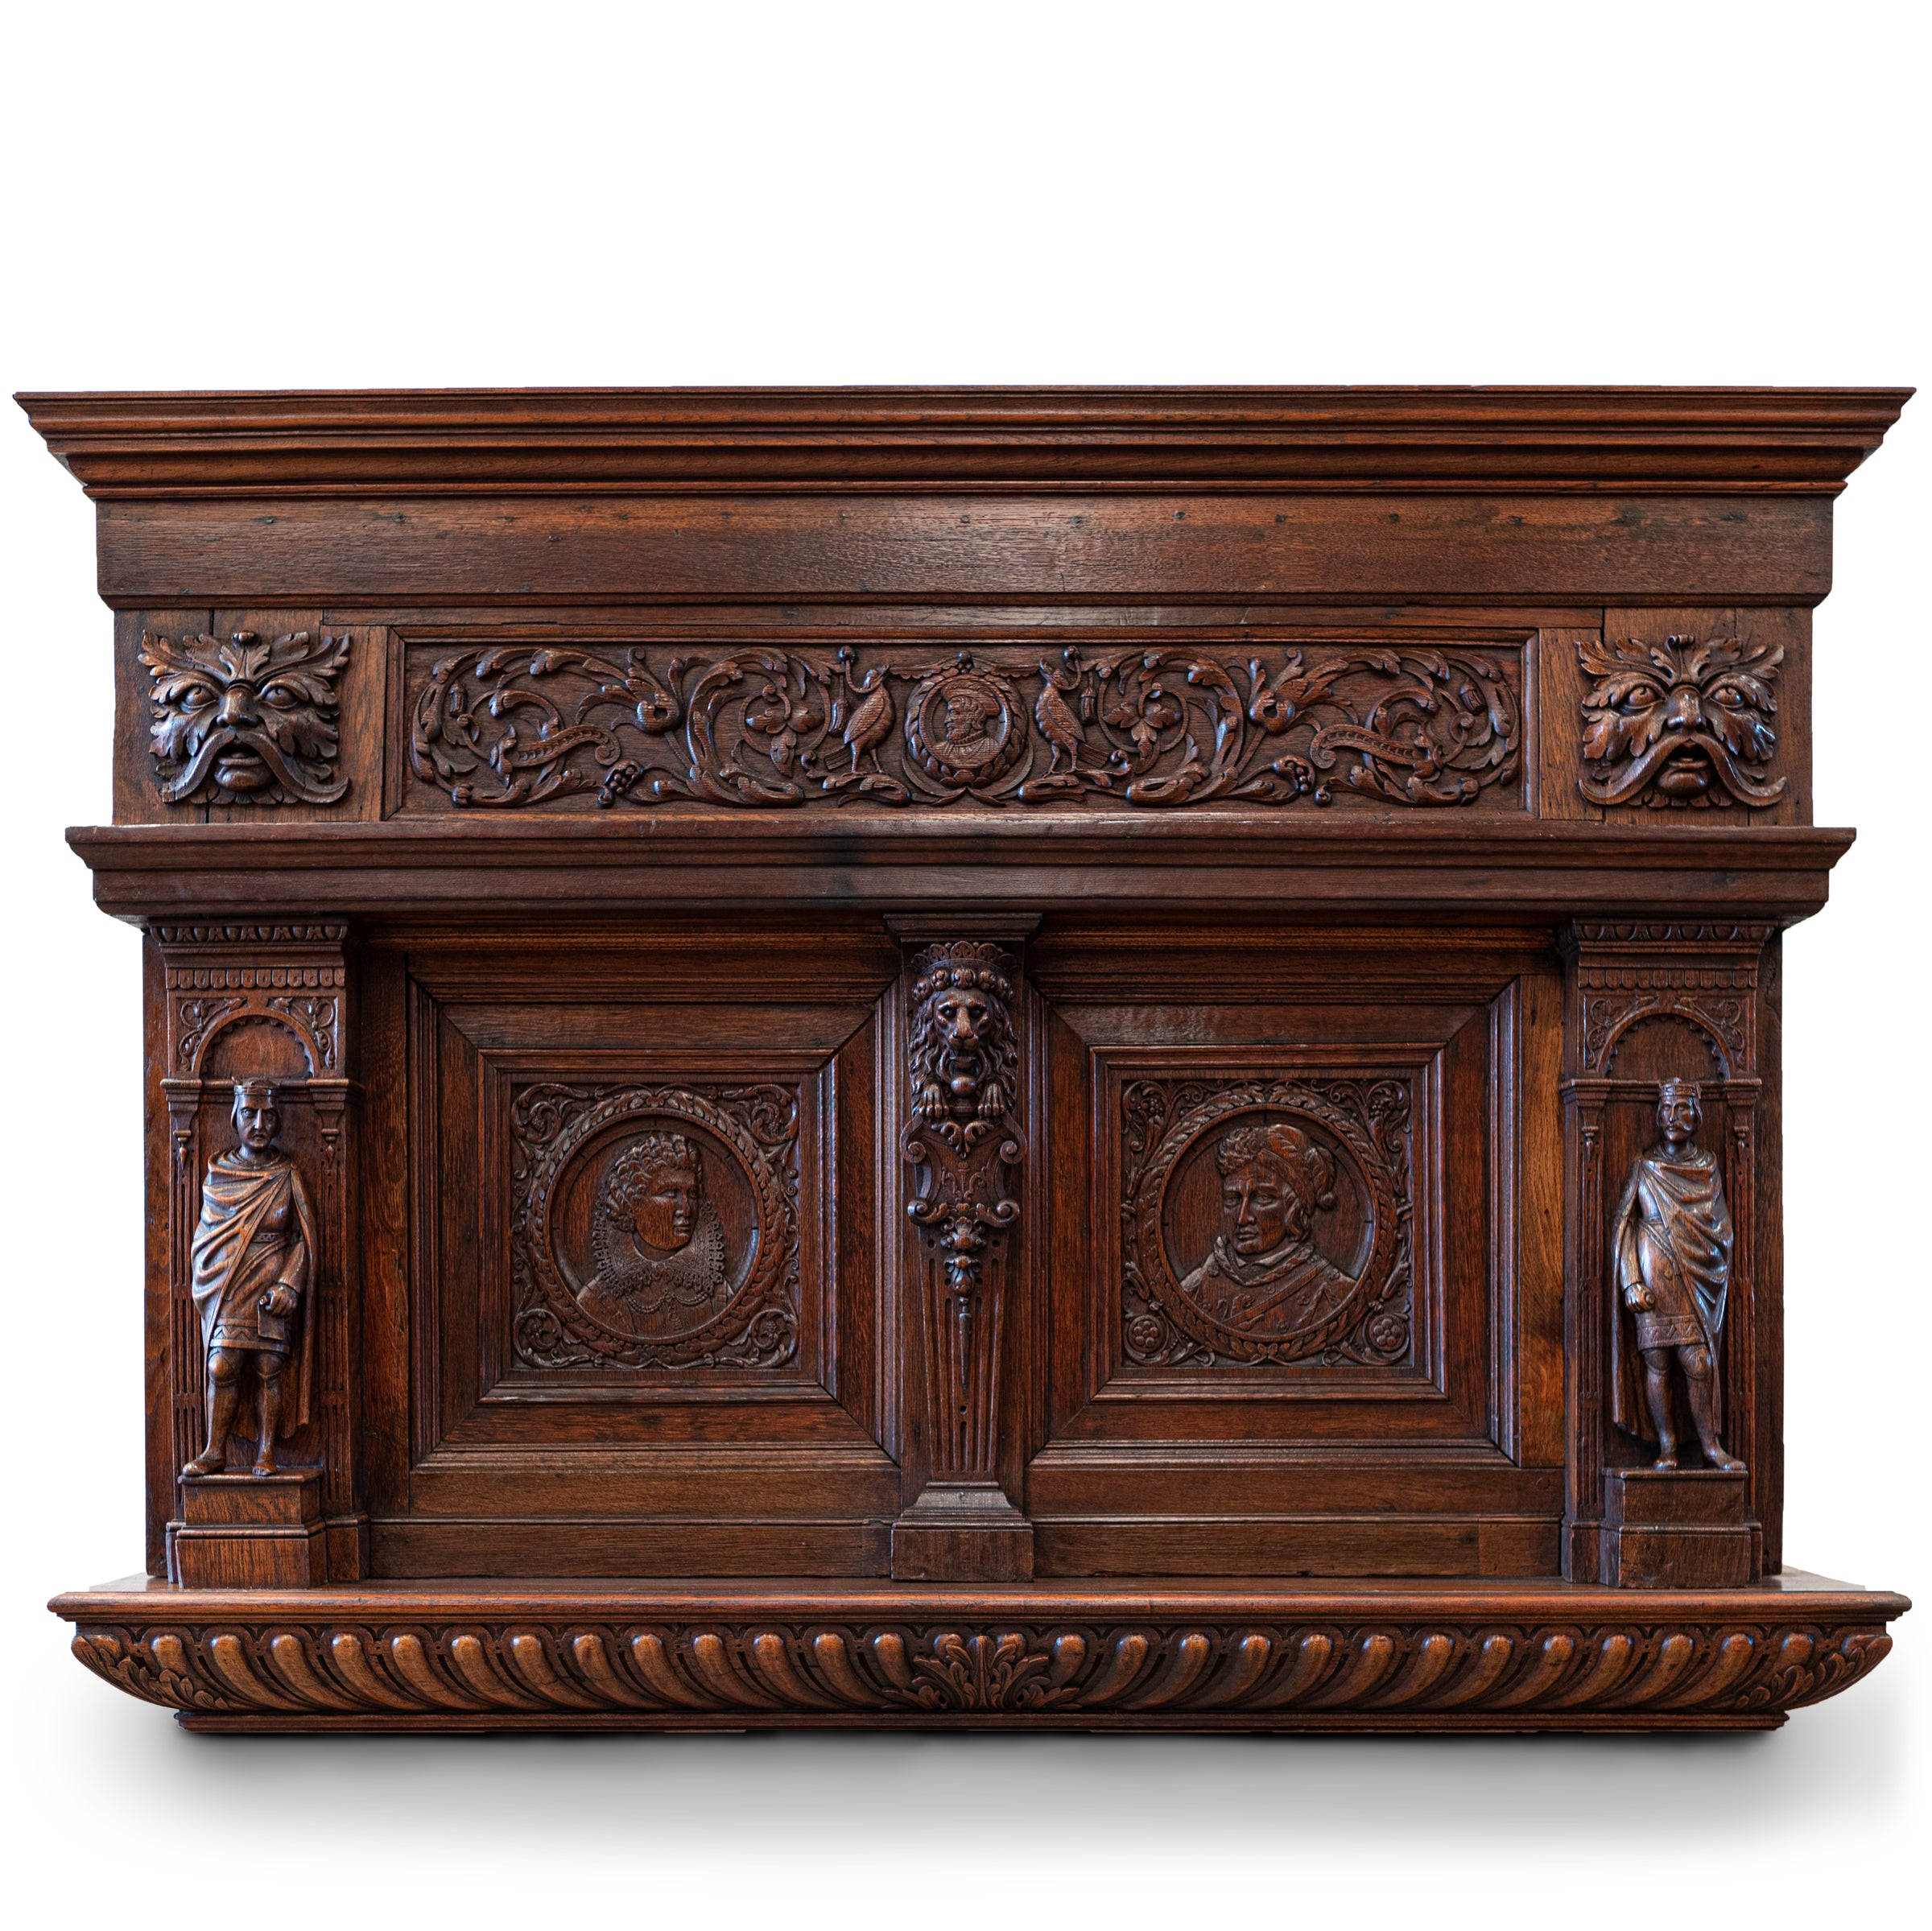 Antique Heavily Carved Oak Jacobean Style Wooden Element , Overmantle